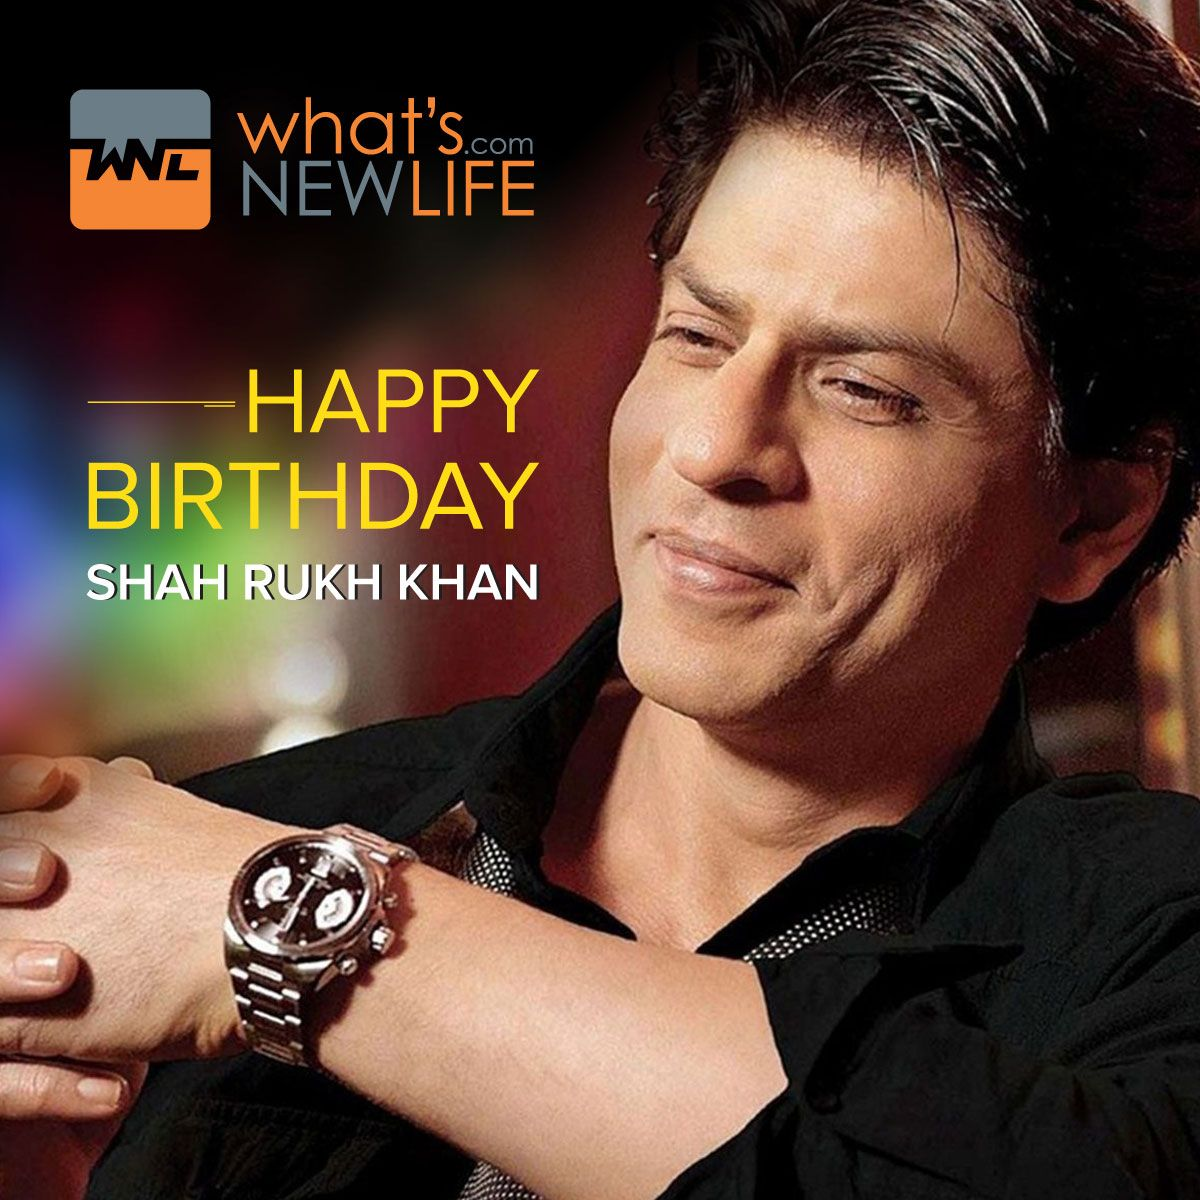 What's New Life wishes the Bollywood Baadshah Shah Rukh